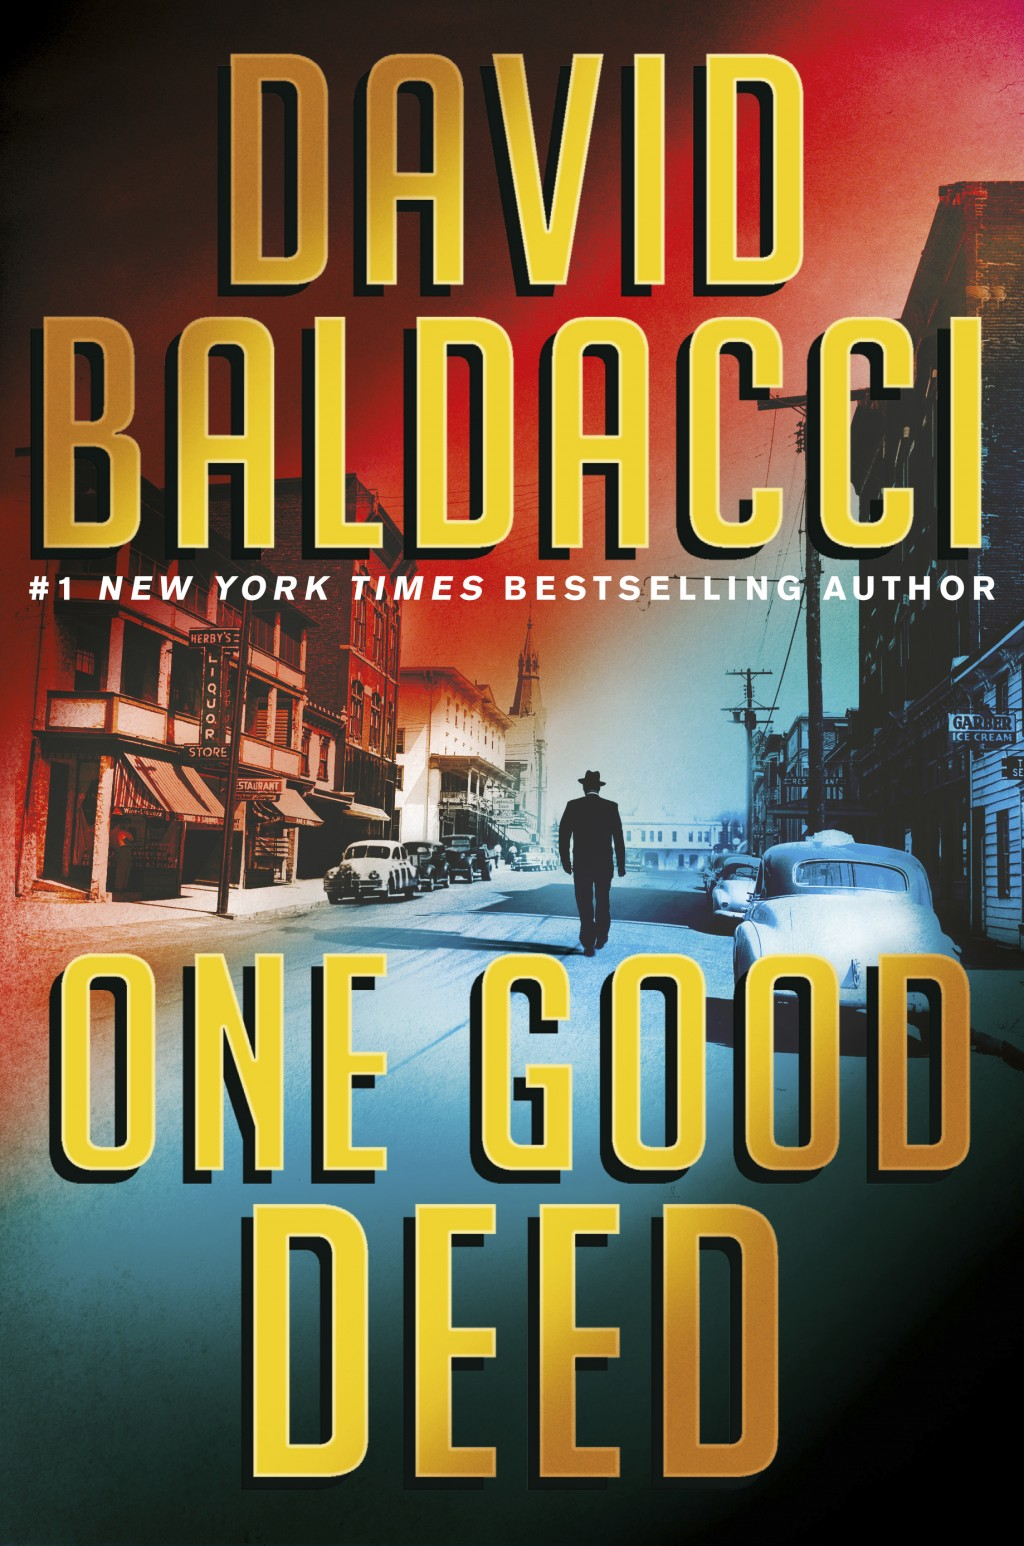 """This cover image released by Grand Central Publishing shows """"One Good Deed,"""" by David Baldacci. (Grand Central Publishing via AP)"""